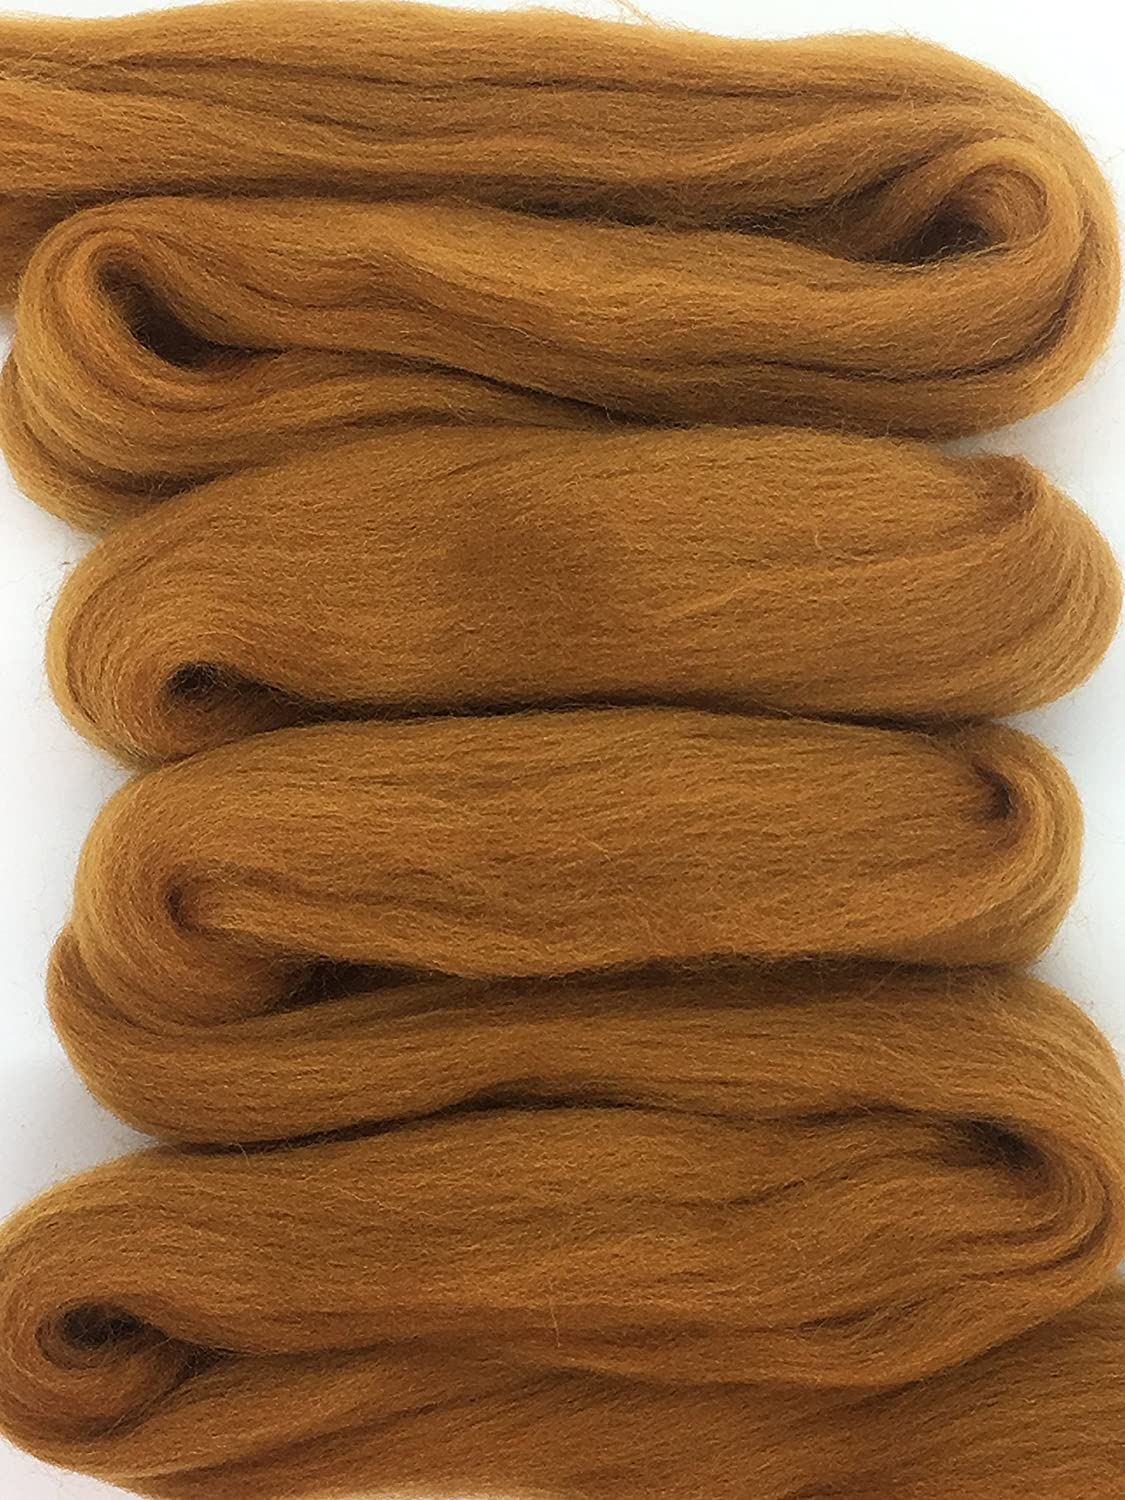 Cinnamon Spice Wool Top Roving Fiber Spinning, Felting Crafts USA (1oz) Shep' s Wool 4336906806